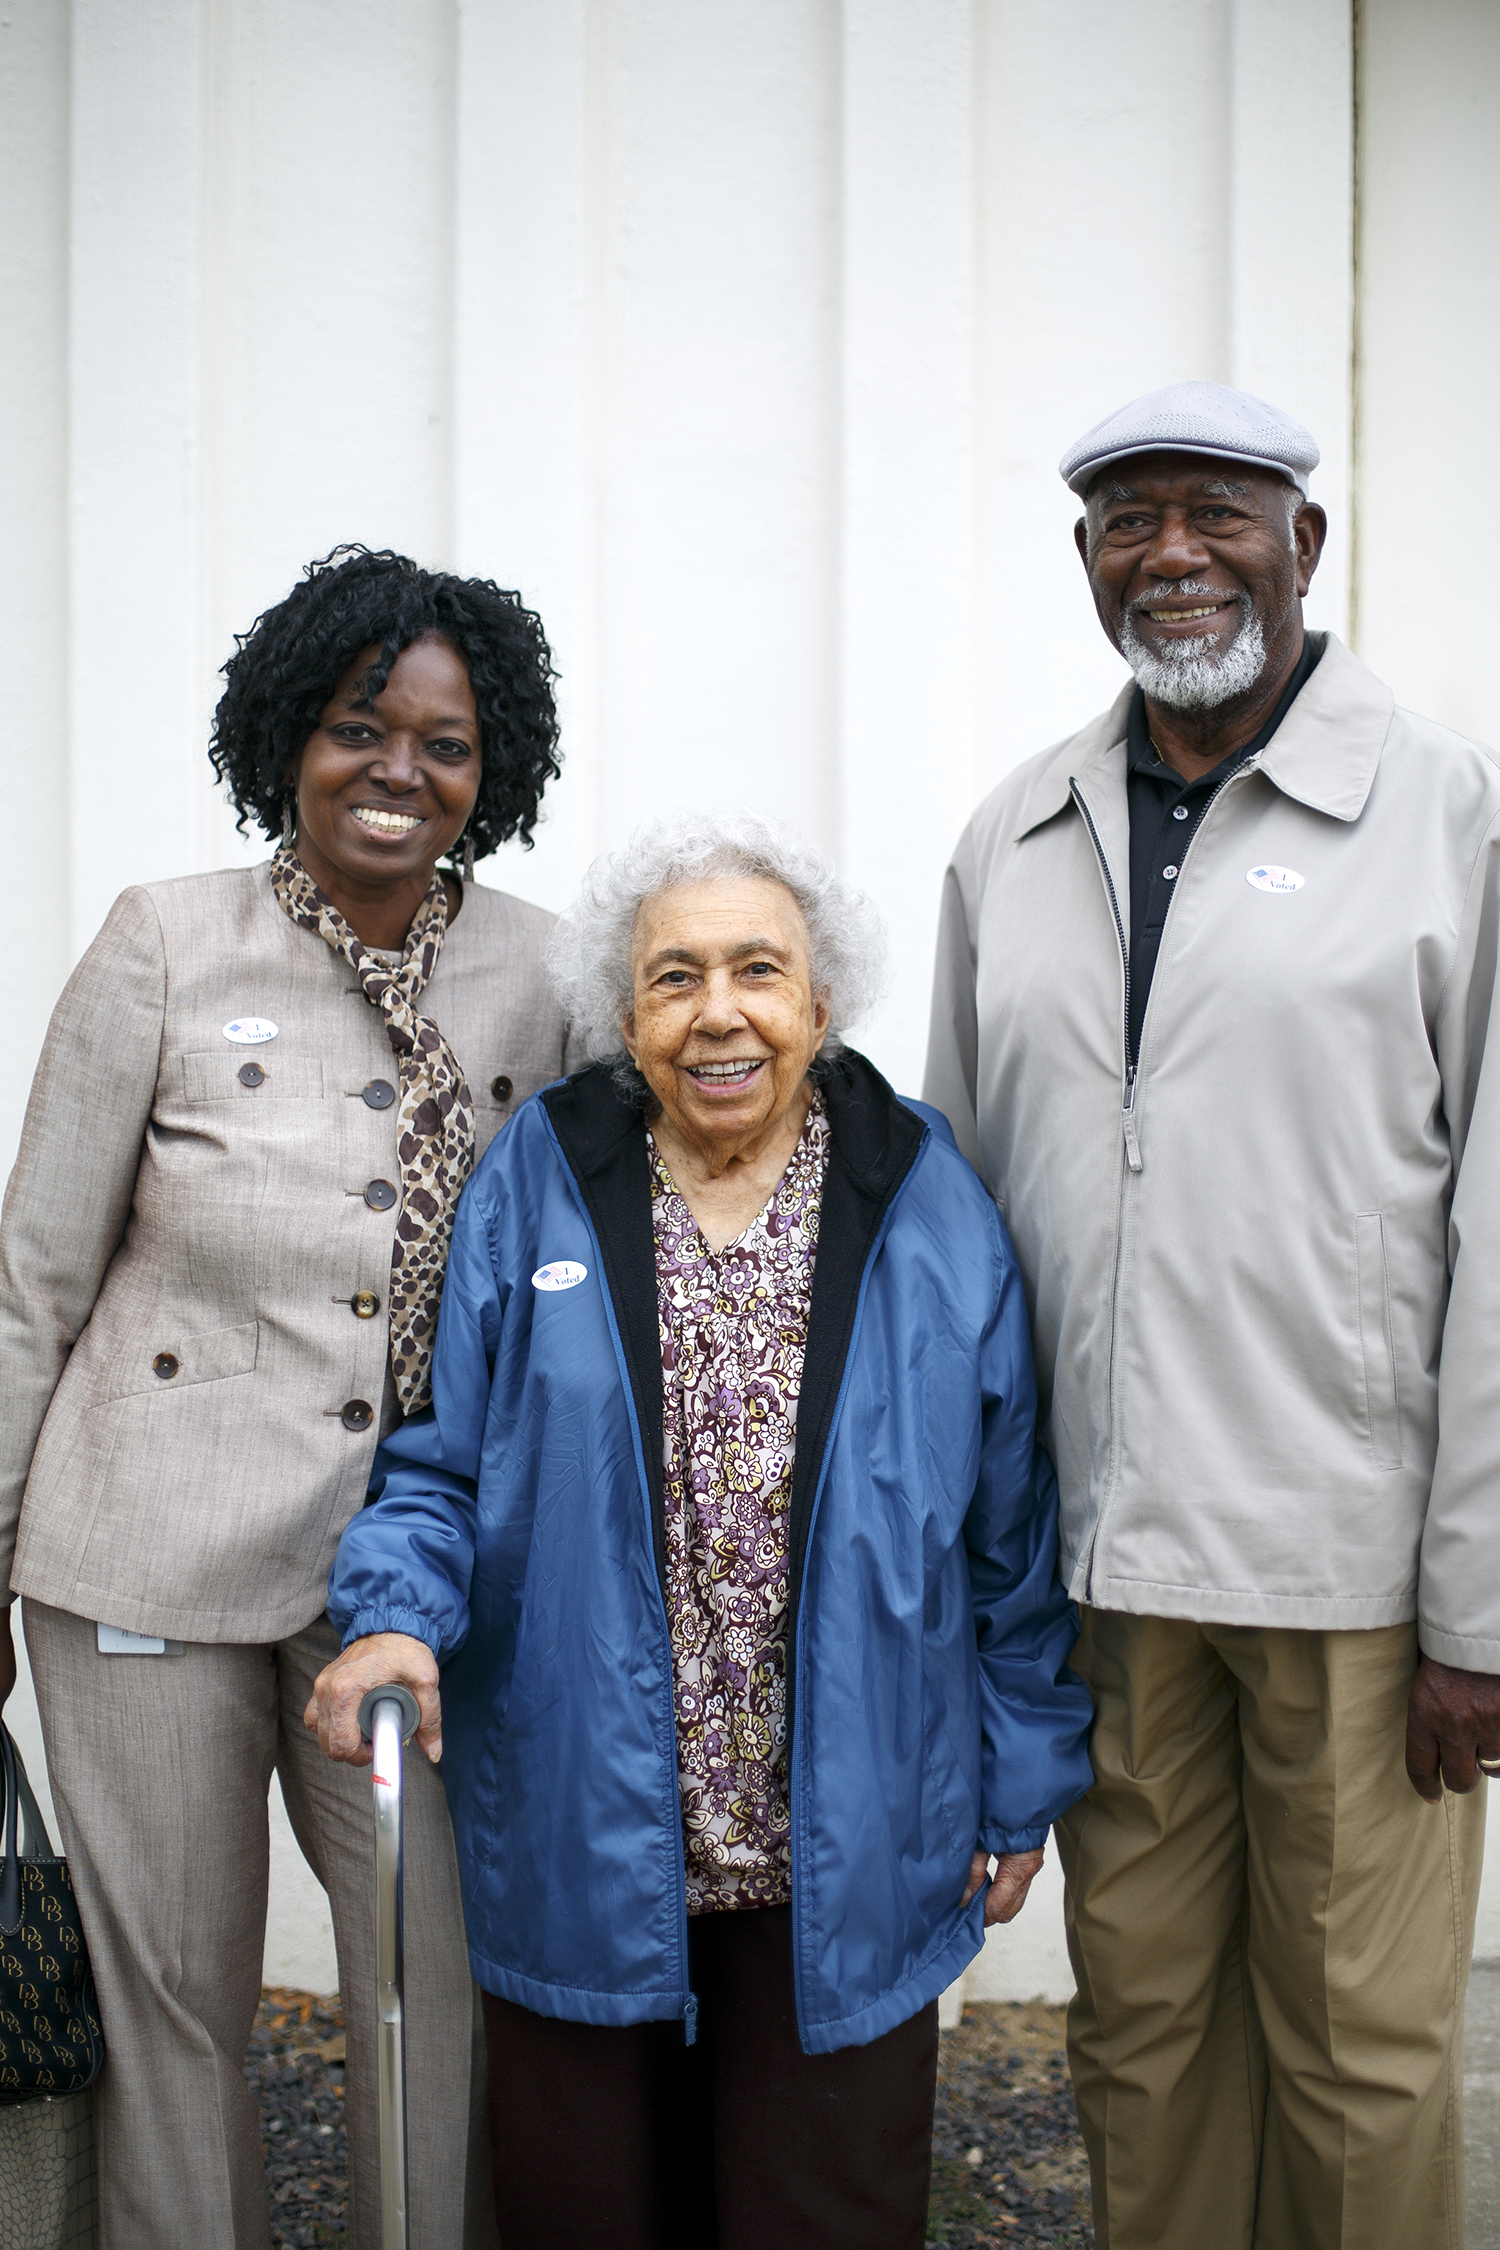 Tina Lathan, left, and her parents Dorothy and James Nixon, 2:43 p.m.